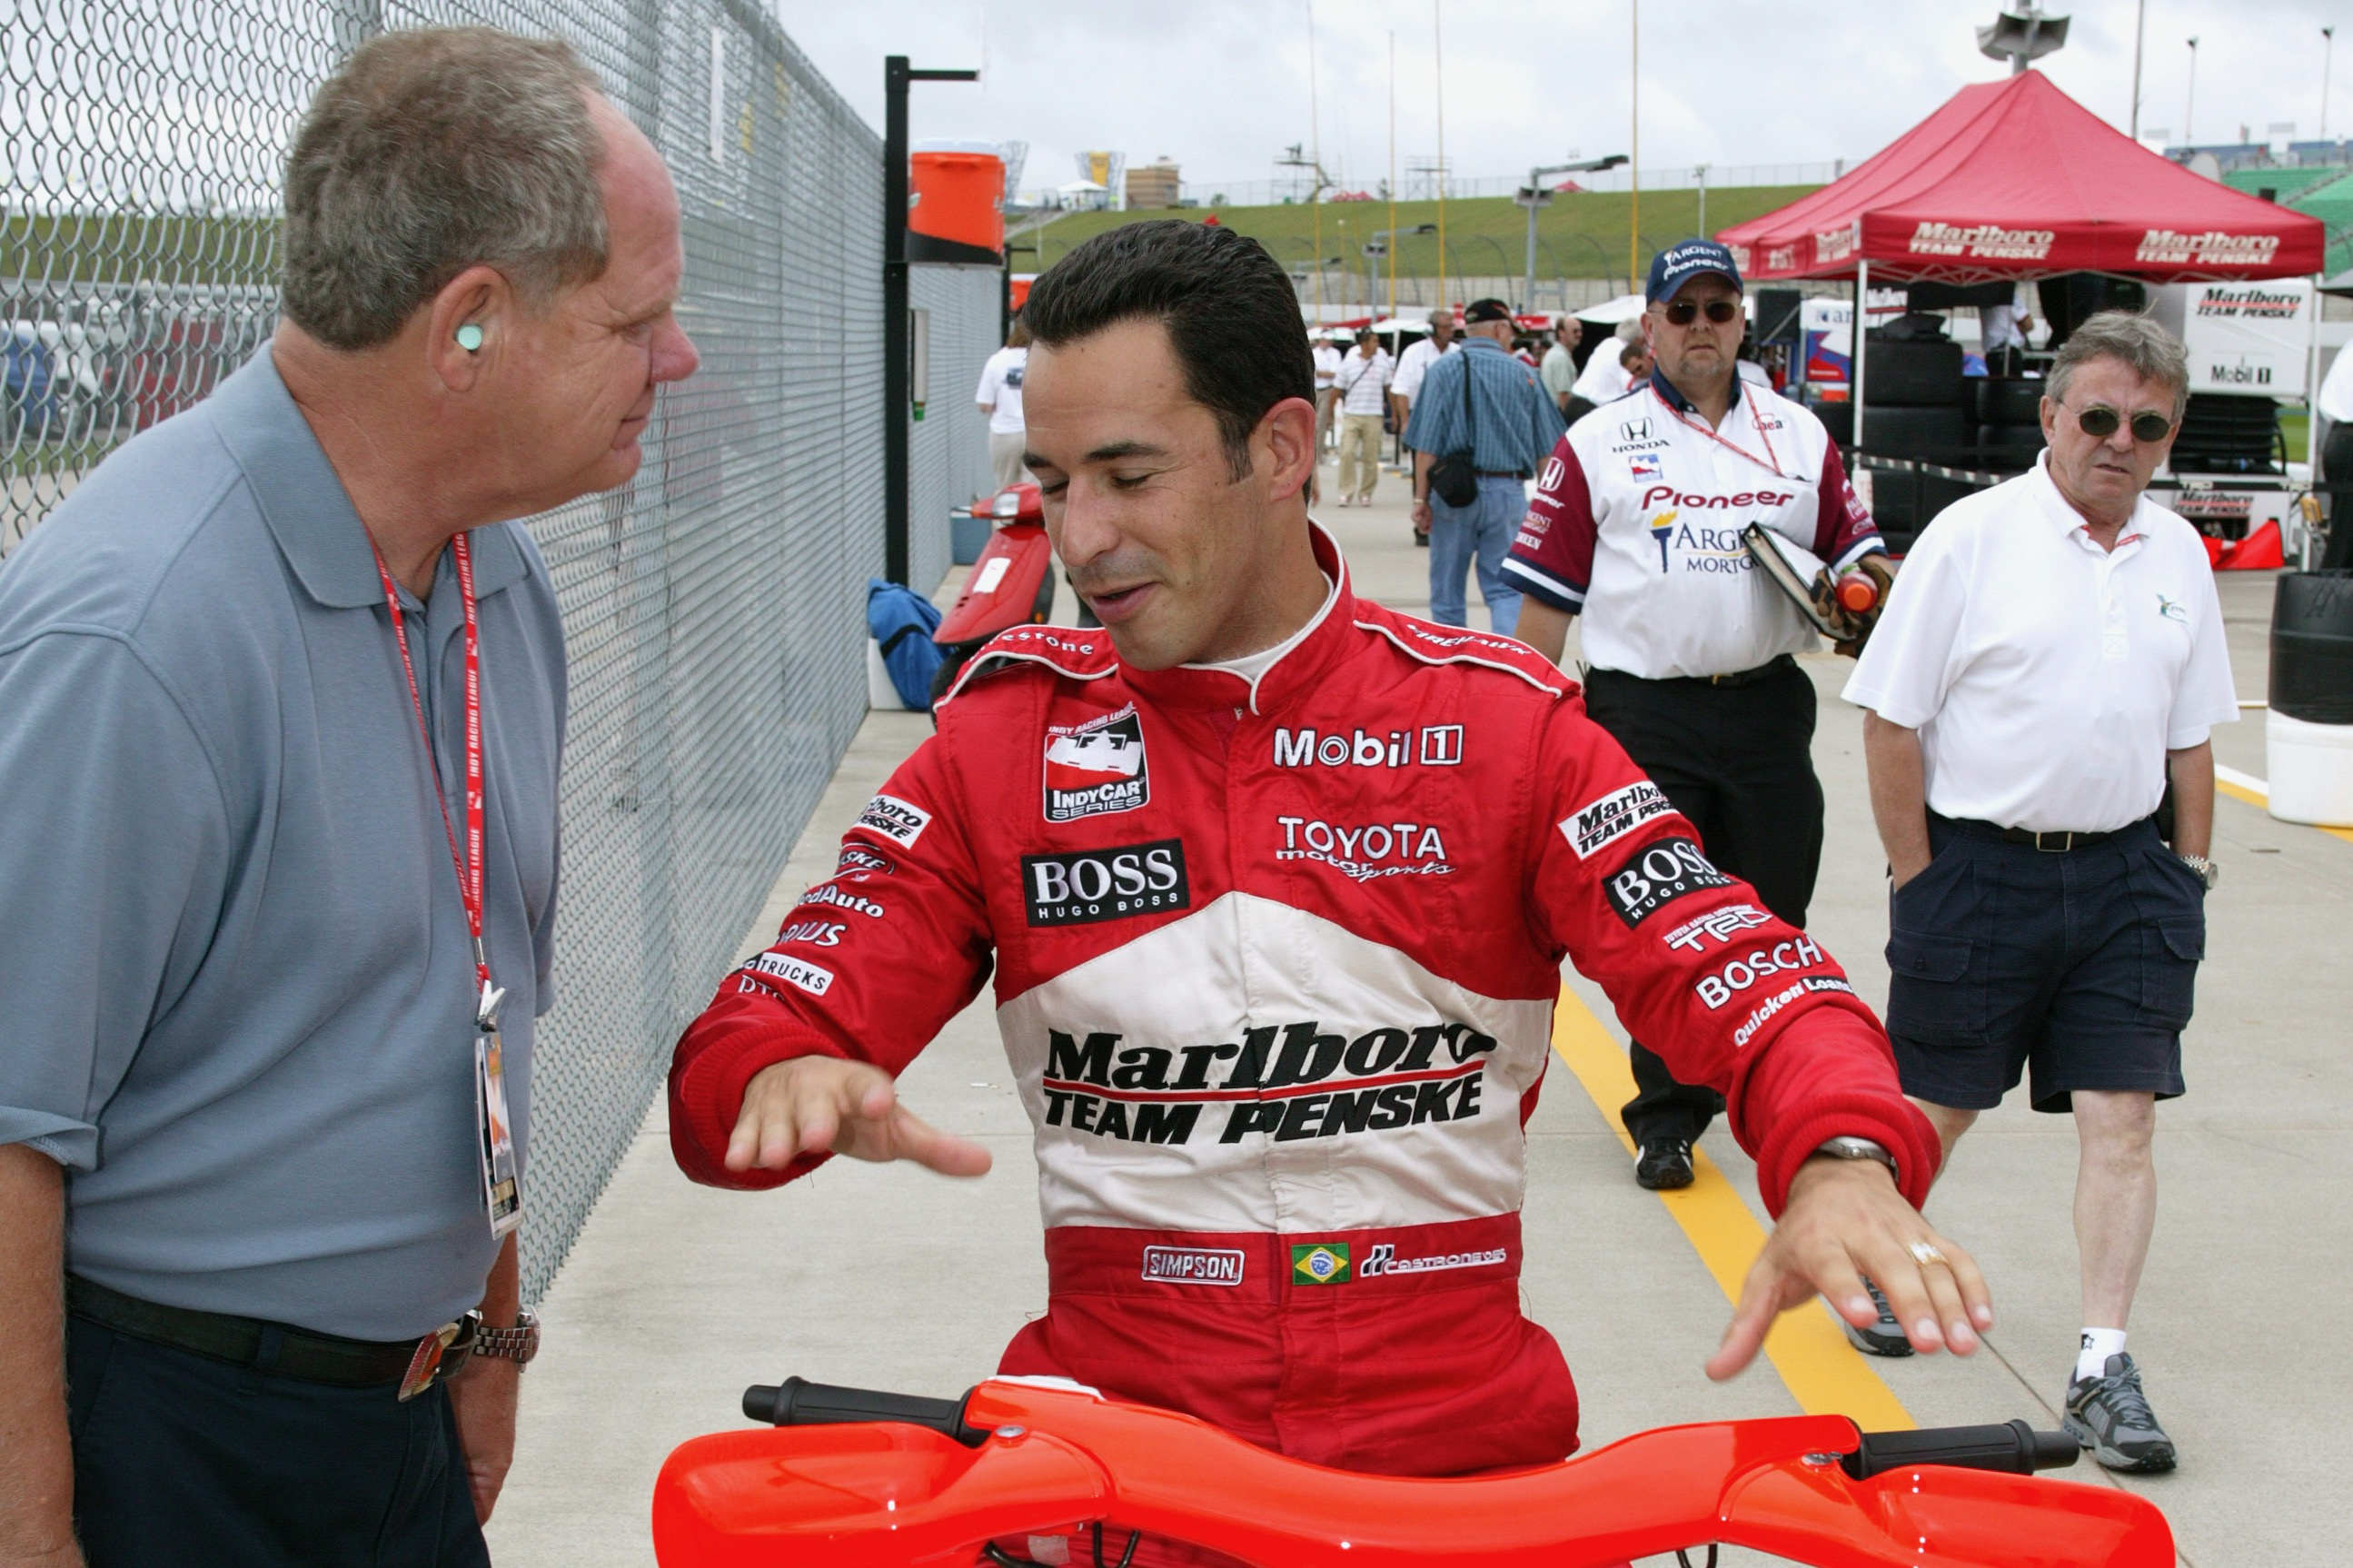 Paul Page Castroneves